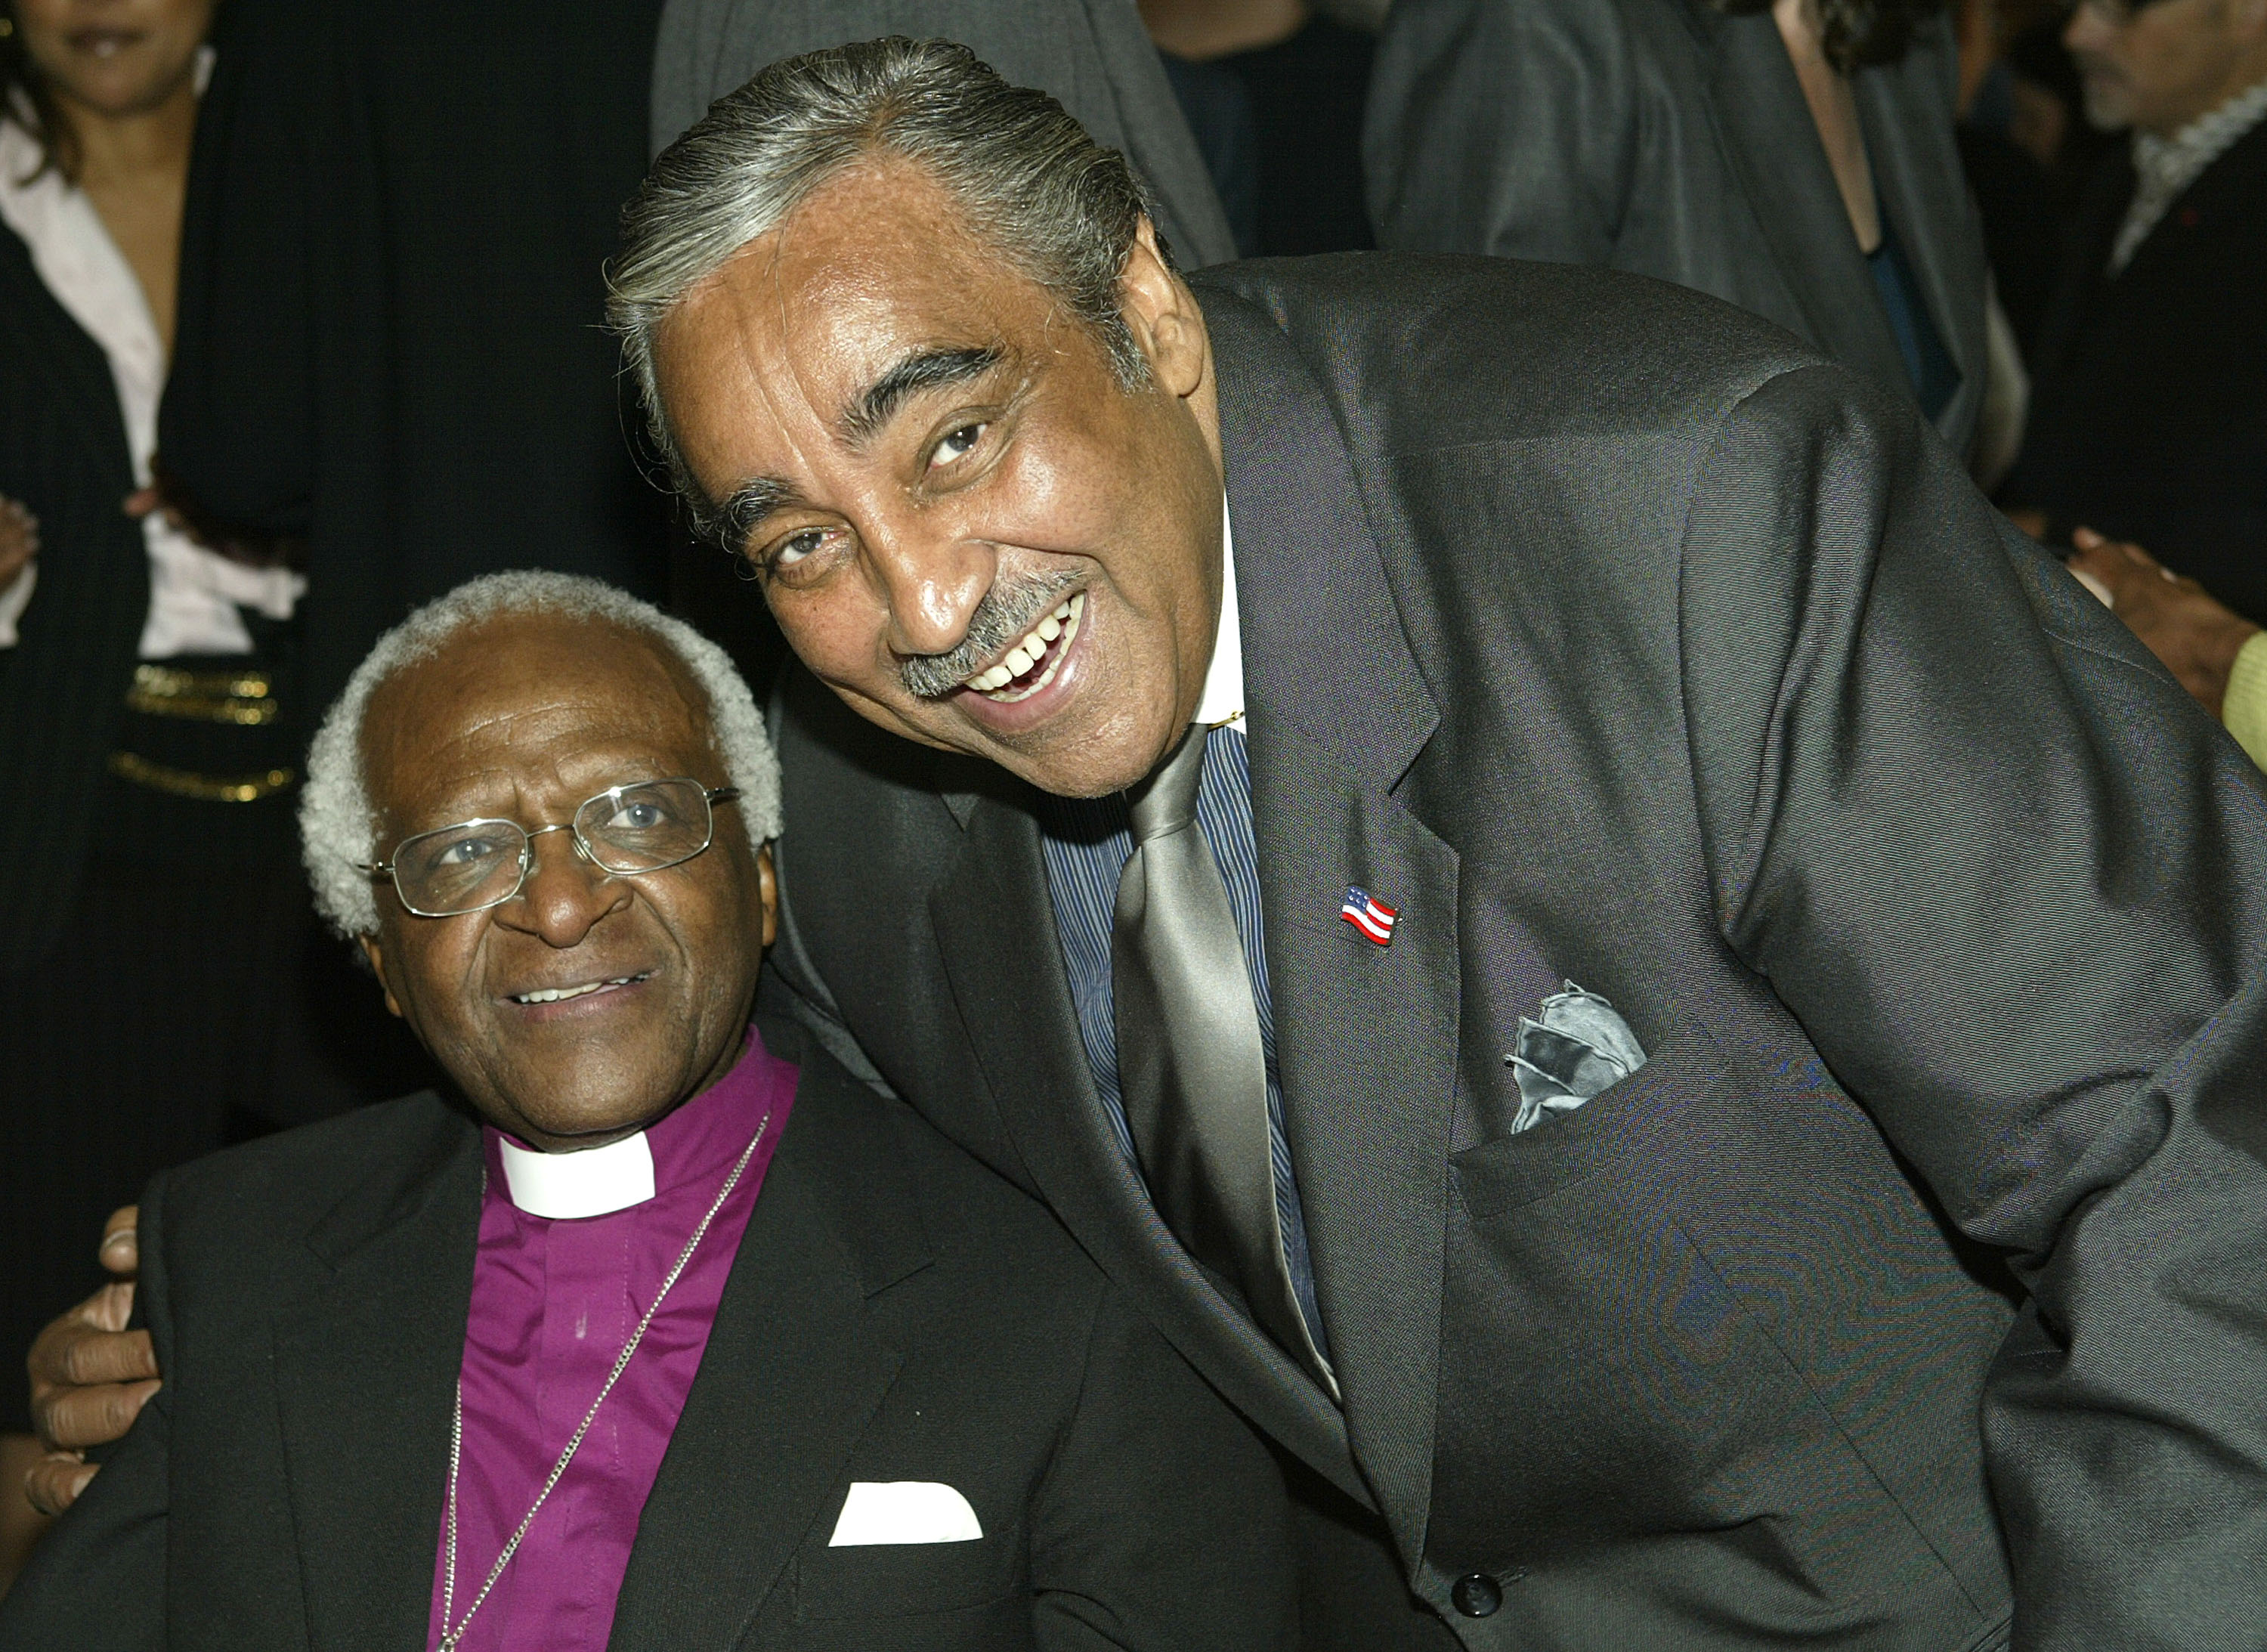 Archbishop Desmond Tutu and congressman Charles Rangel attend the VIP Opening Luncheon before the Tribeca Film Festival at the Tribeca Loft in New York City on May 1, 2004.